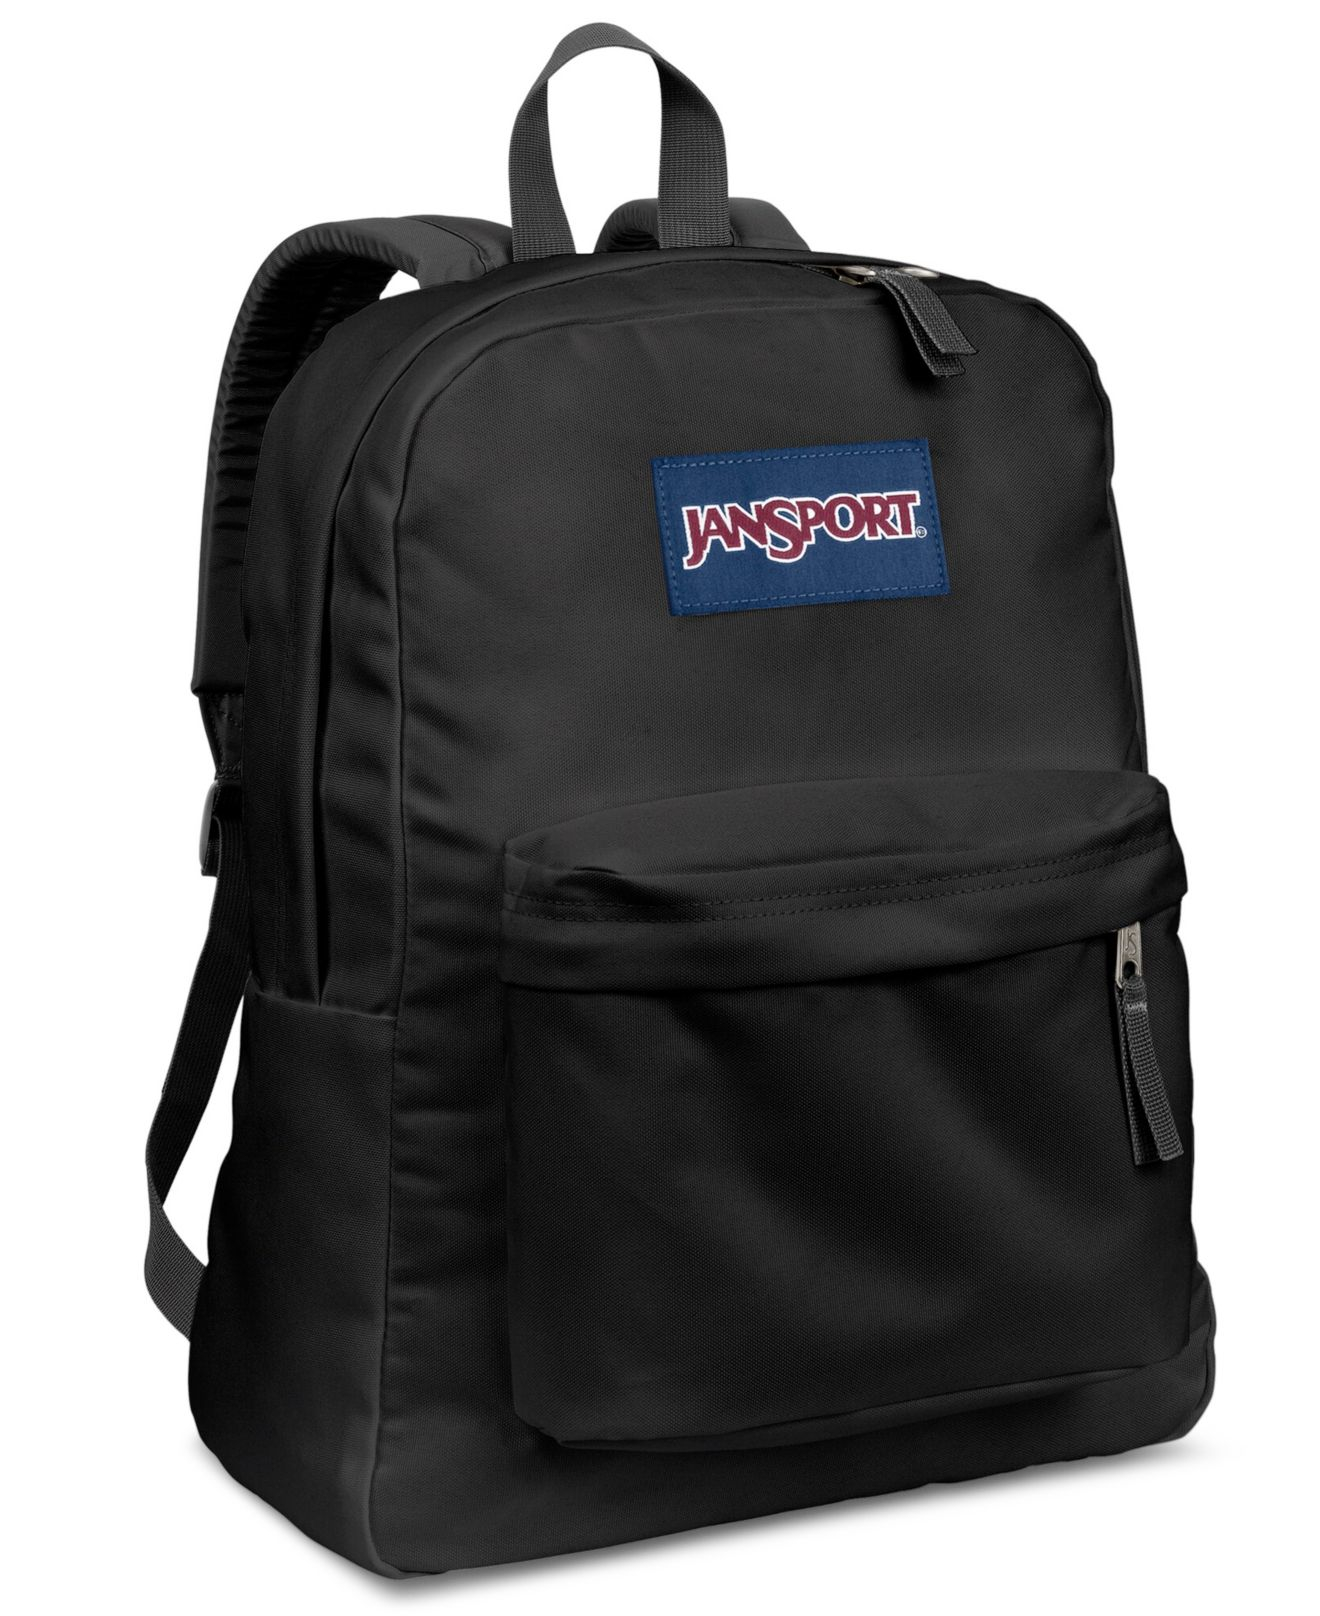 Backpack Black Lyst Jansport Superbreak Backpack In Black In Black For Men